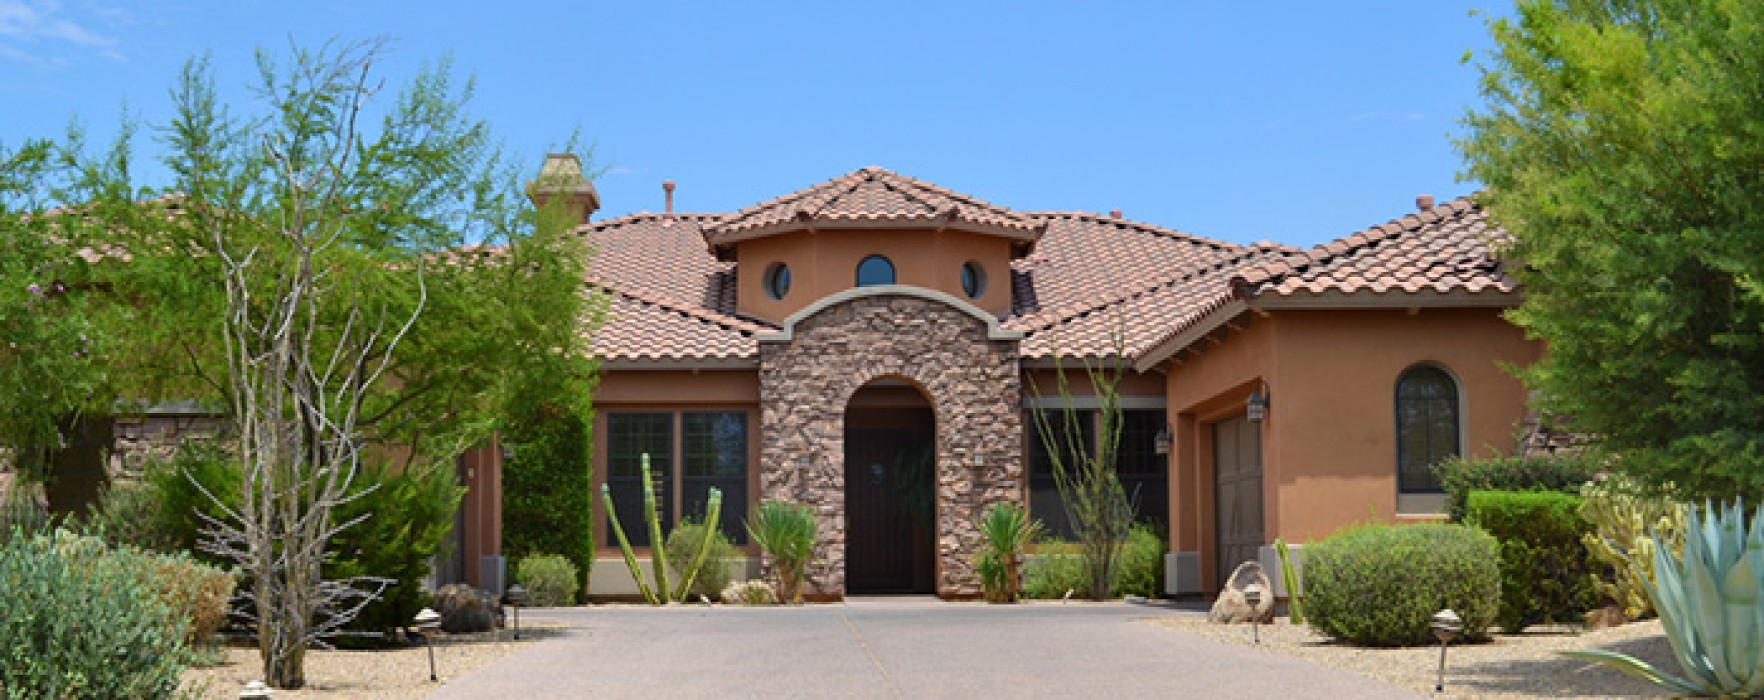 Mesa az real estate something for everyone better homes - 3 bedroom houses for rent in mesa az ...